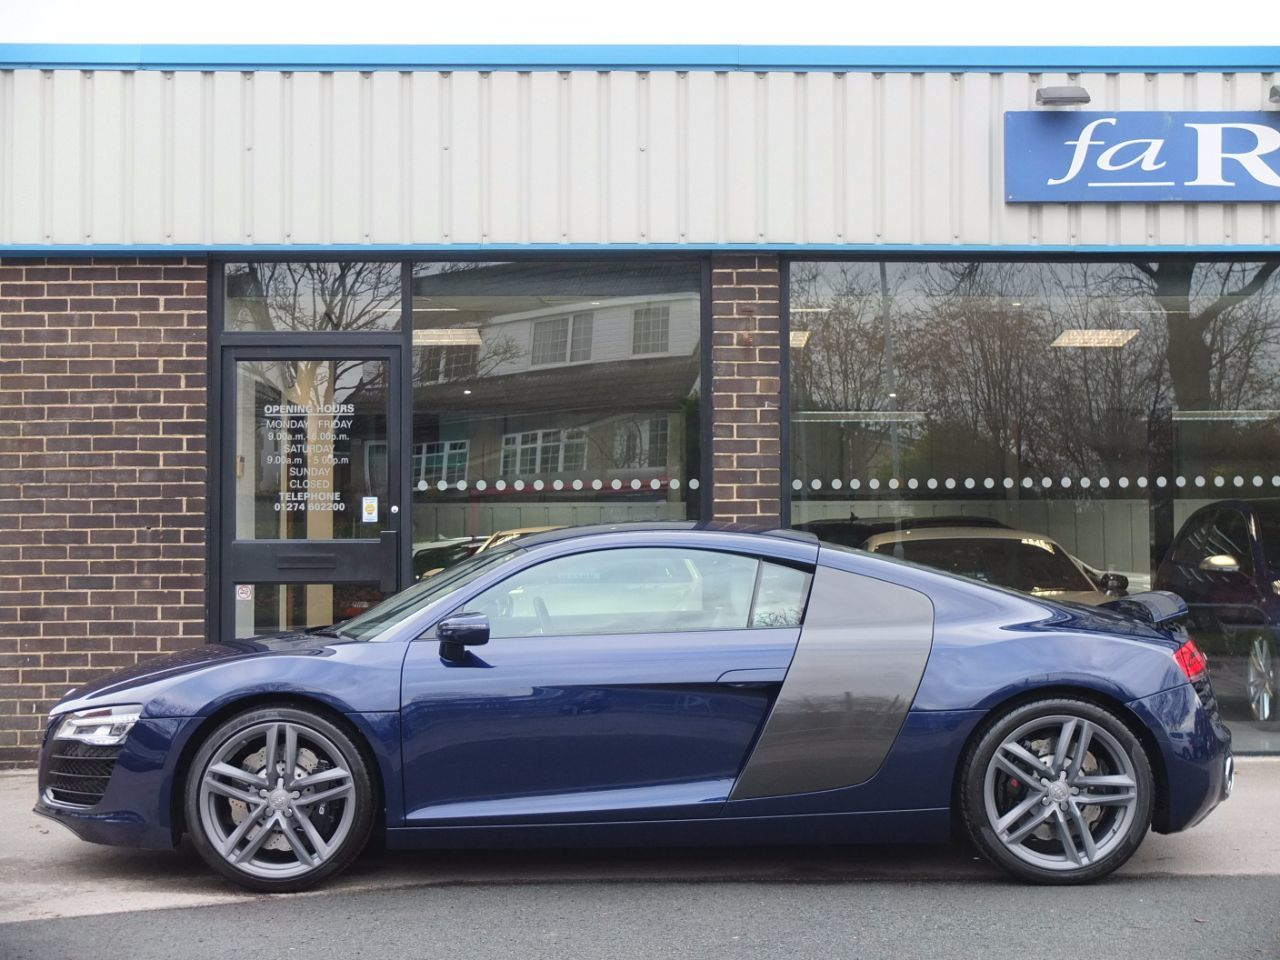 Audi R8 4.2 FSI V8 quattro S-Tronic 430ps Coupe Petrol Estoril Blue Metallic